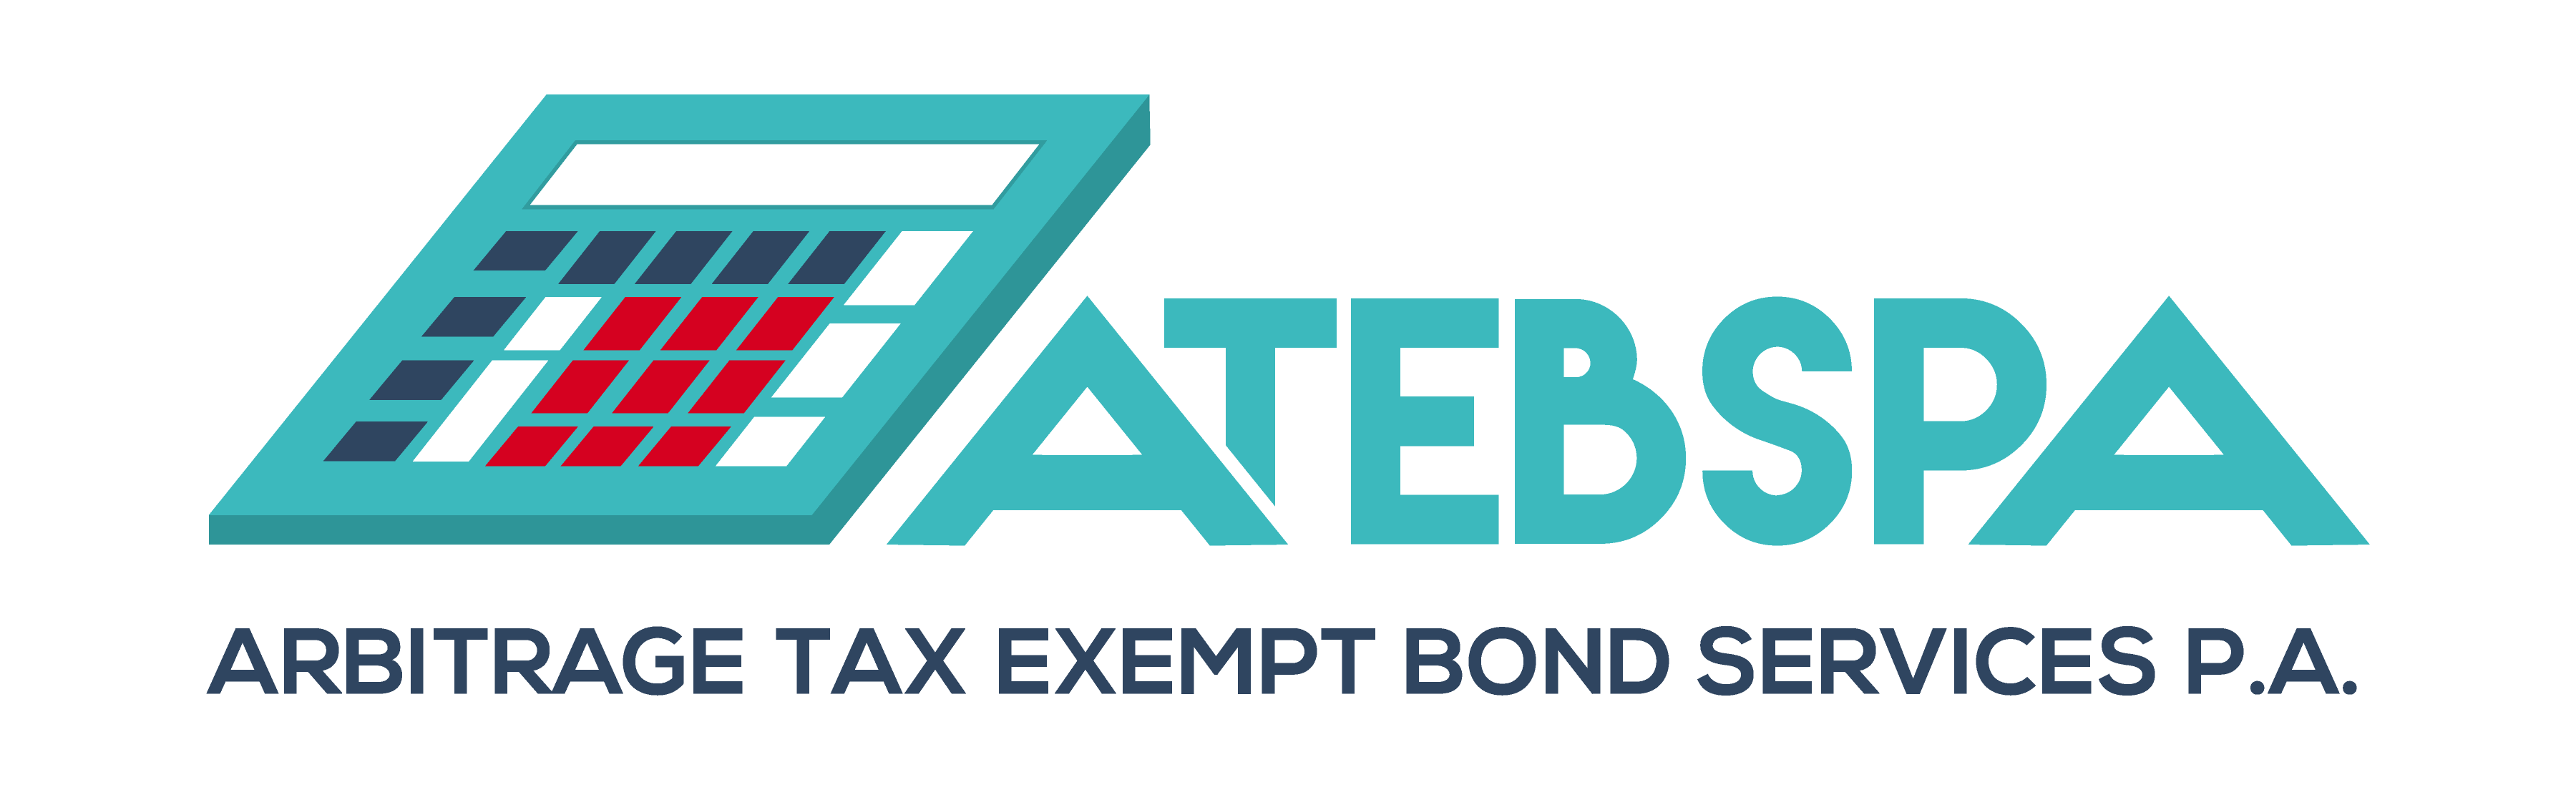 Arbitrage Tax Exempt Bond Services P.A.